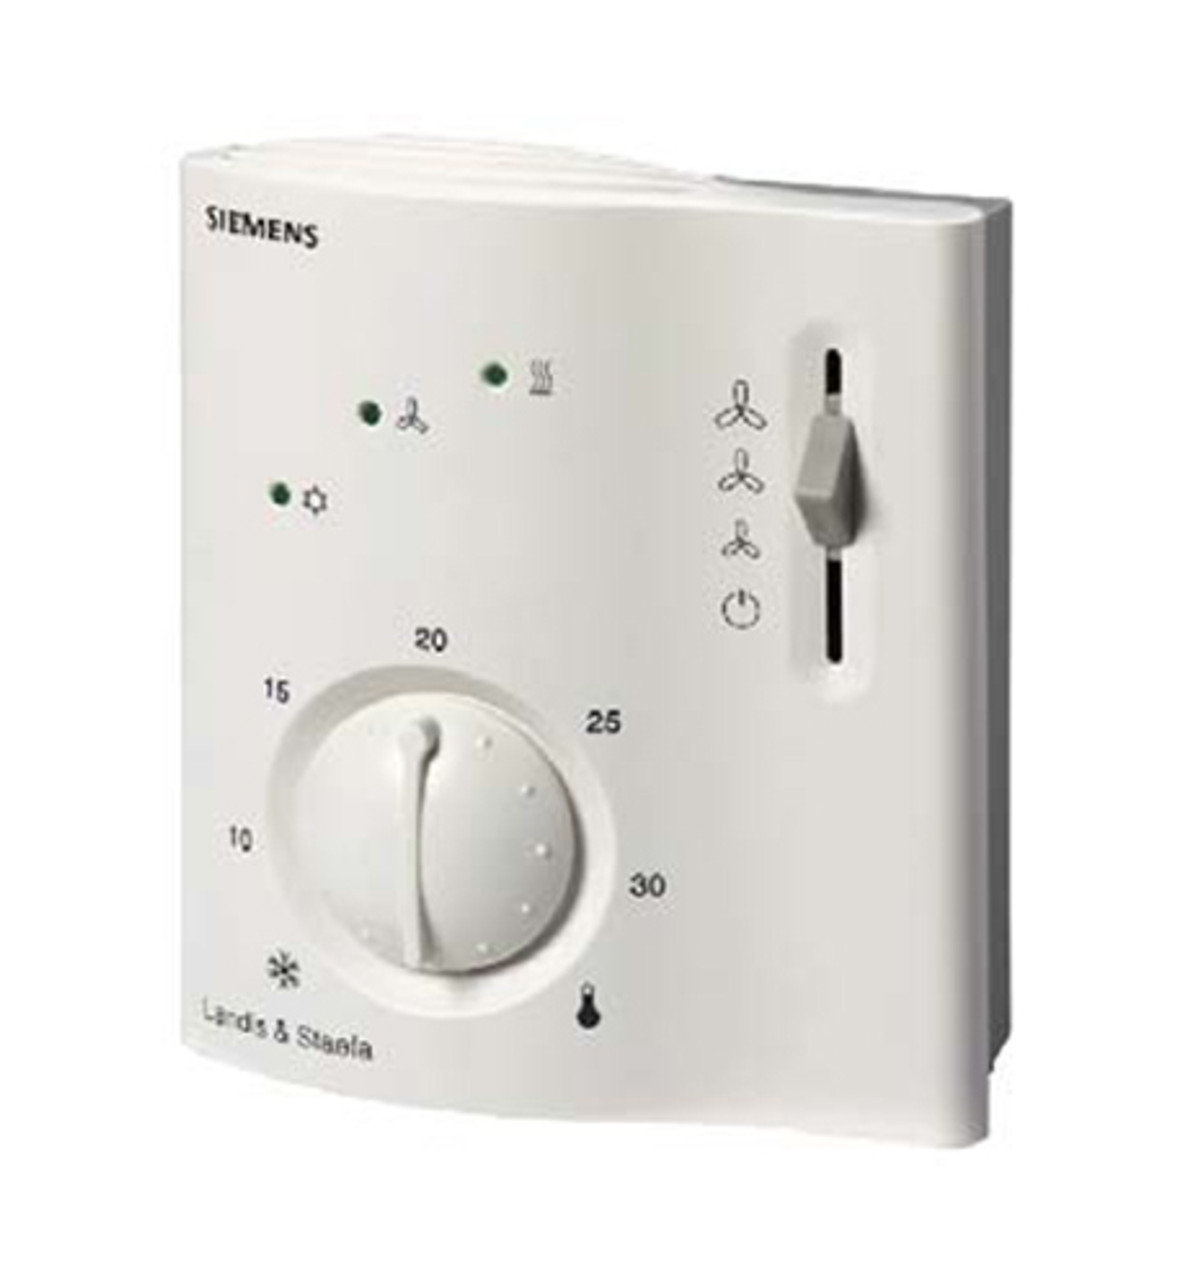 Siemens RCC30, Room thermostat for 4-pipe fan coils, AC 230 V